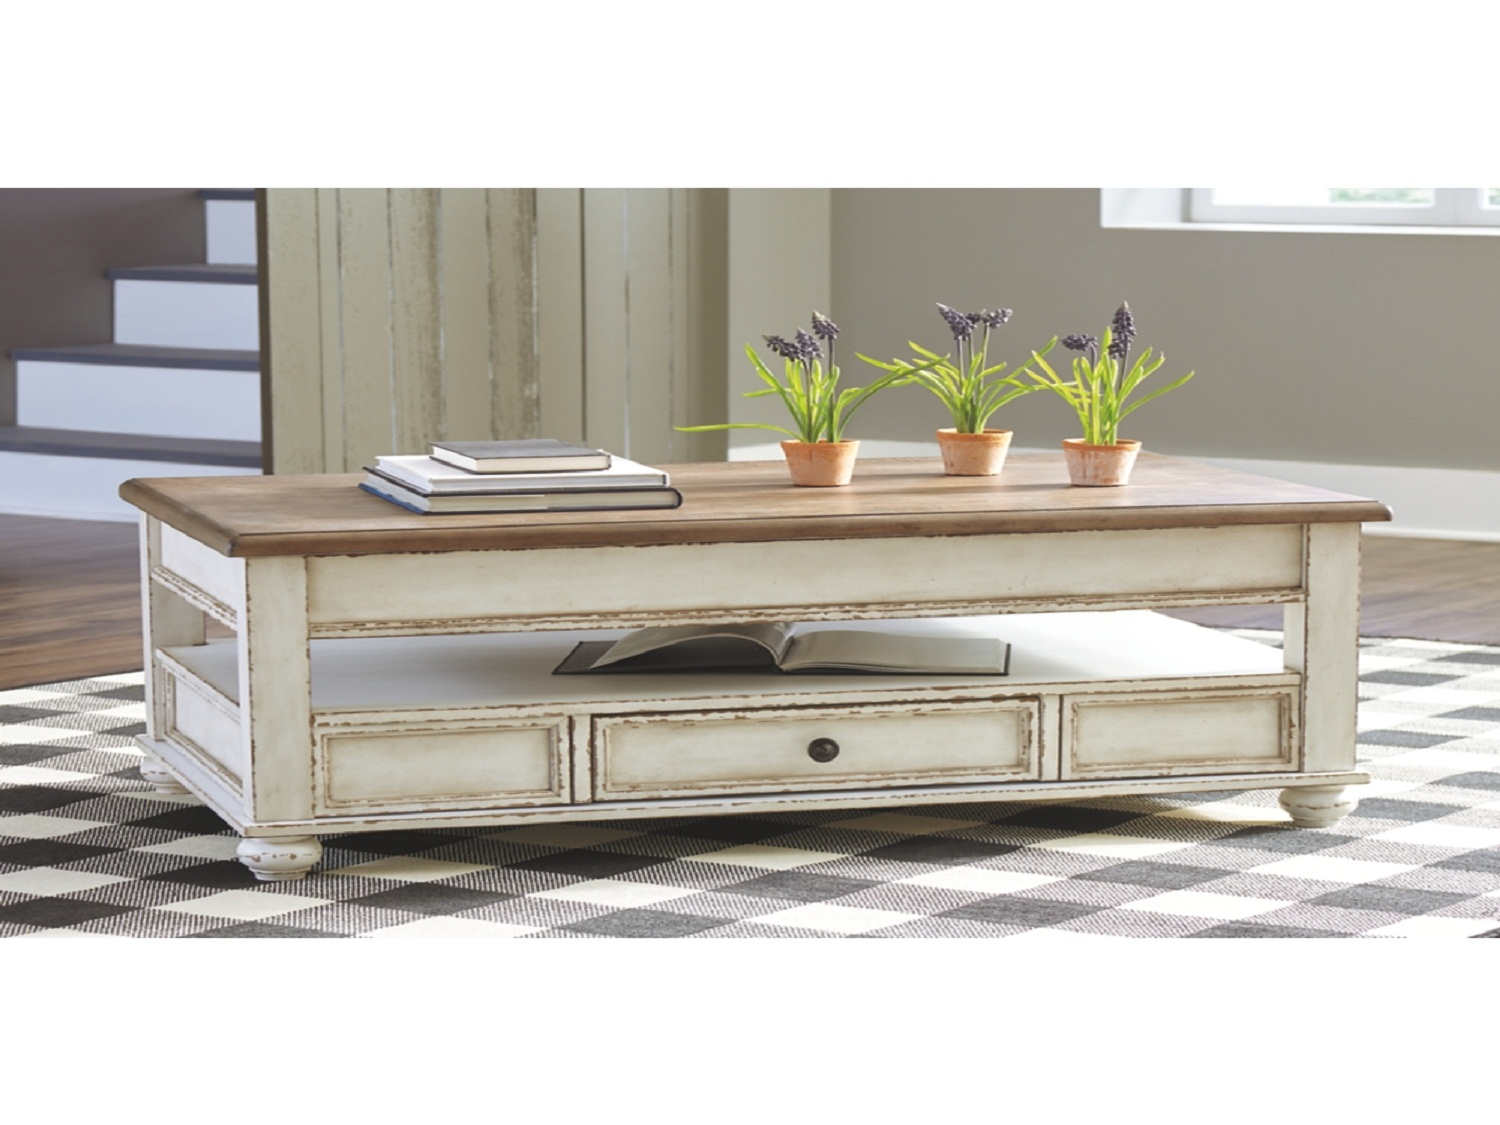 RealynLift Top Coffee Table, T523, Coffee Table by Midha Furniture to Brampton, Mississauga, Etobicoke, Toronto, Scraborough, Caledon, Oakville, Markham, Ajax, Pickering, Oshawa, Richmondhill, Kitchener, Hamilton and GTA area